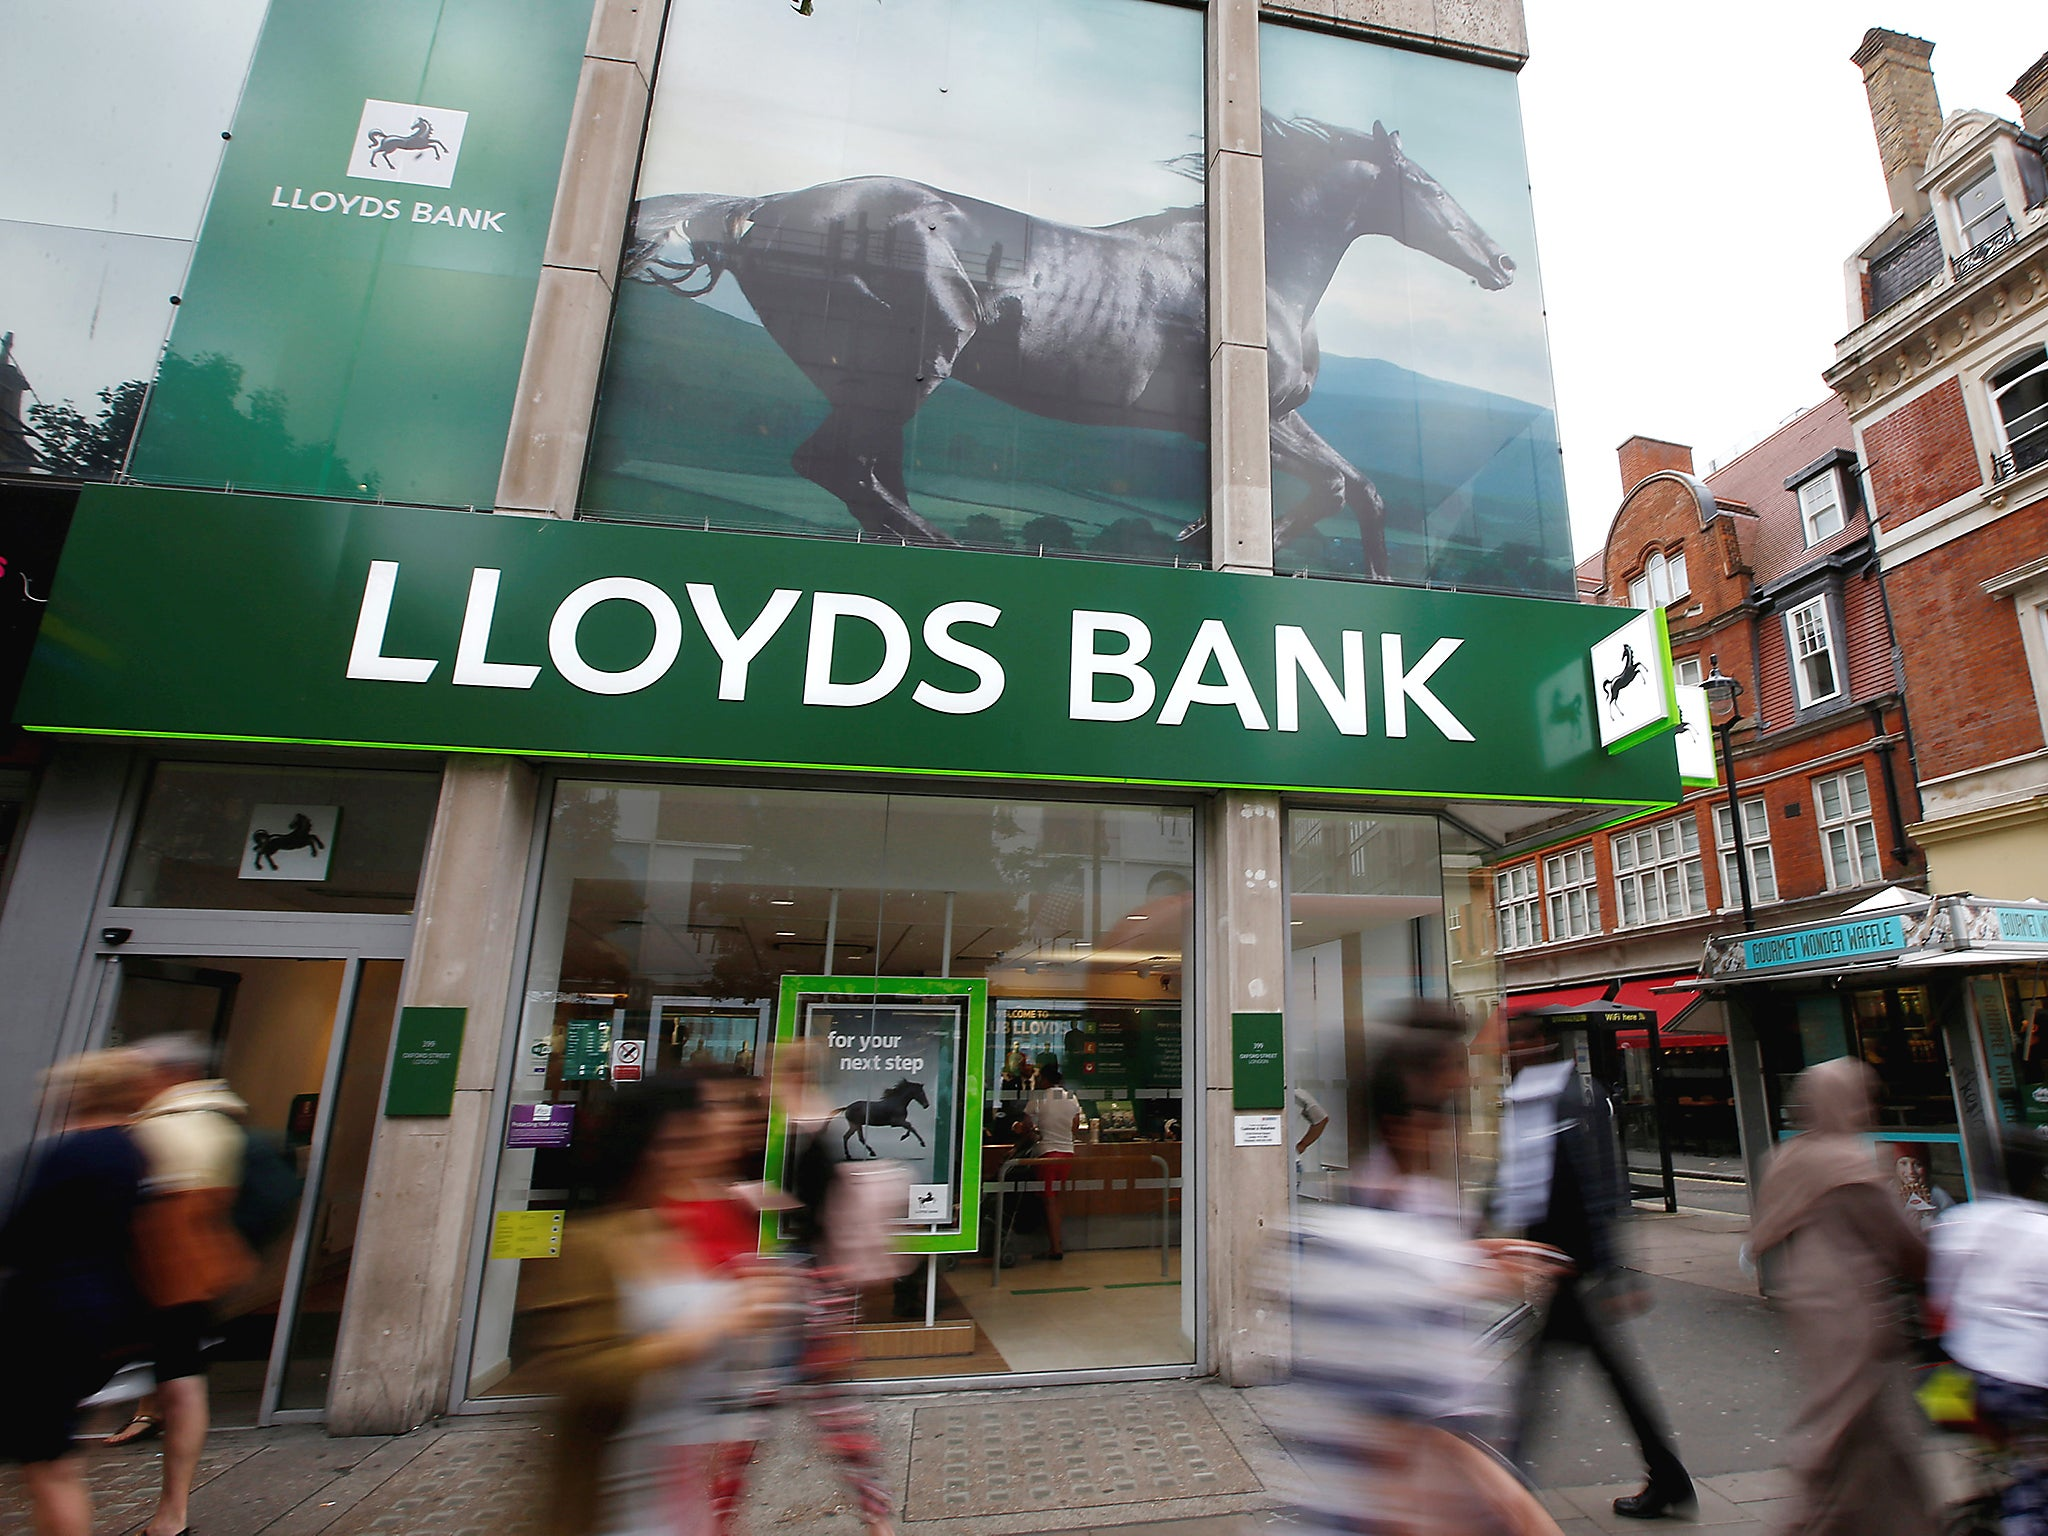 Lloyds rakes in billions but how much is too much? | The Independentindependent_brand_ident_LOGOUntitled